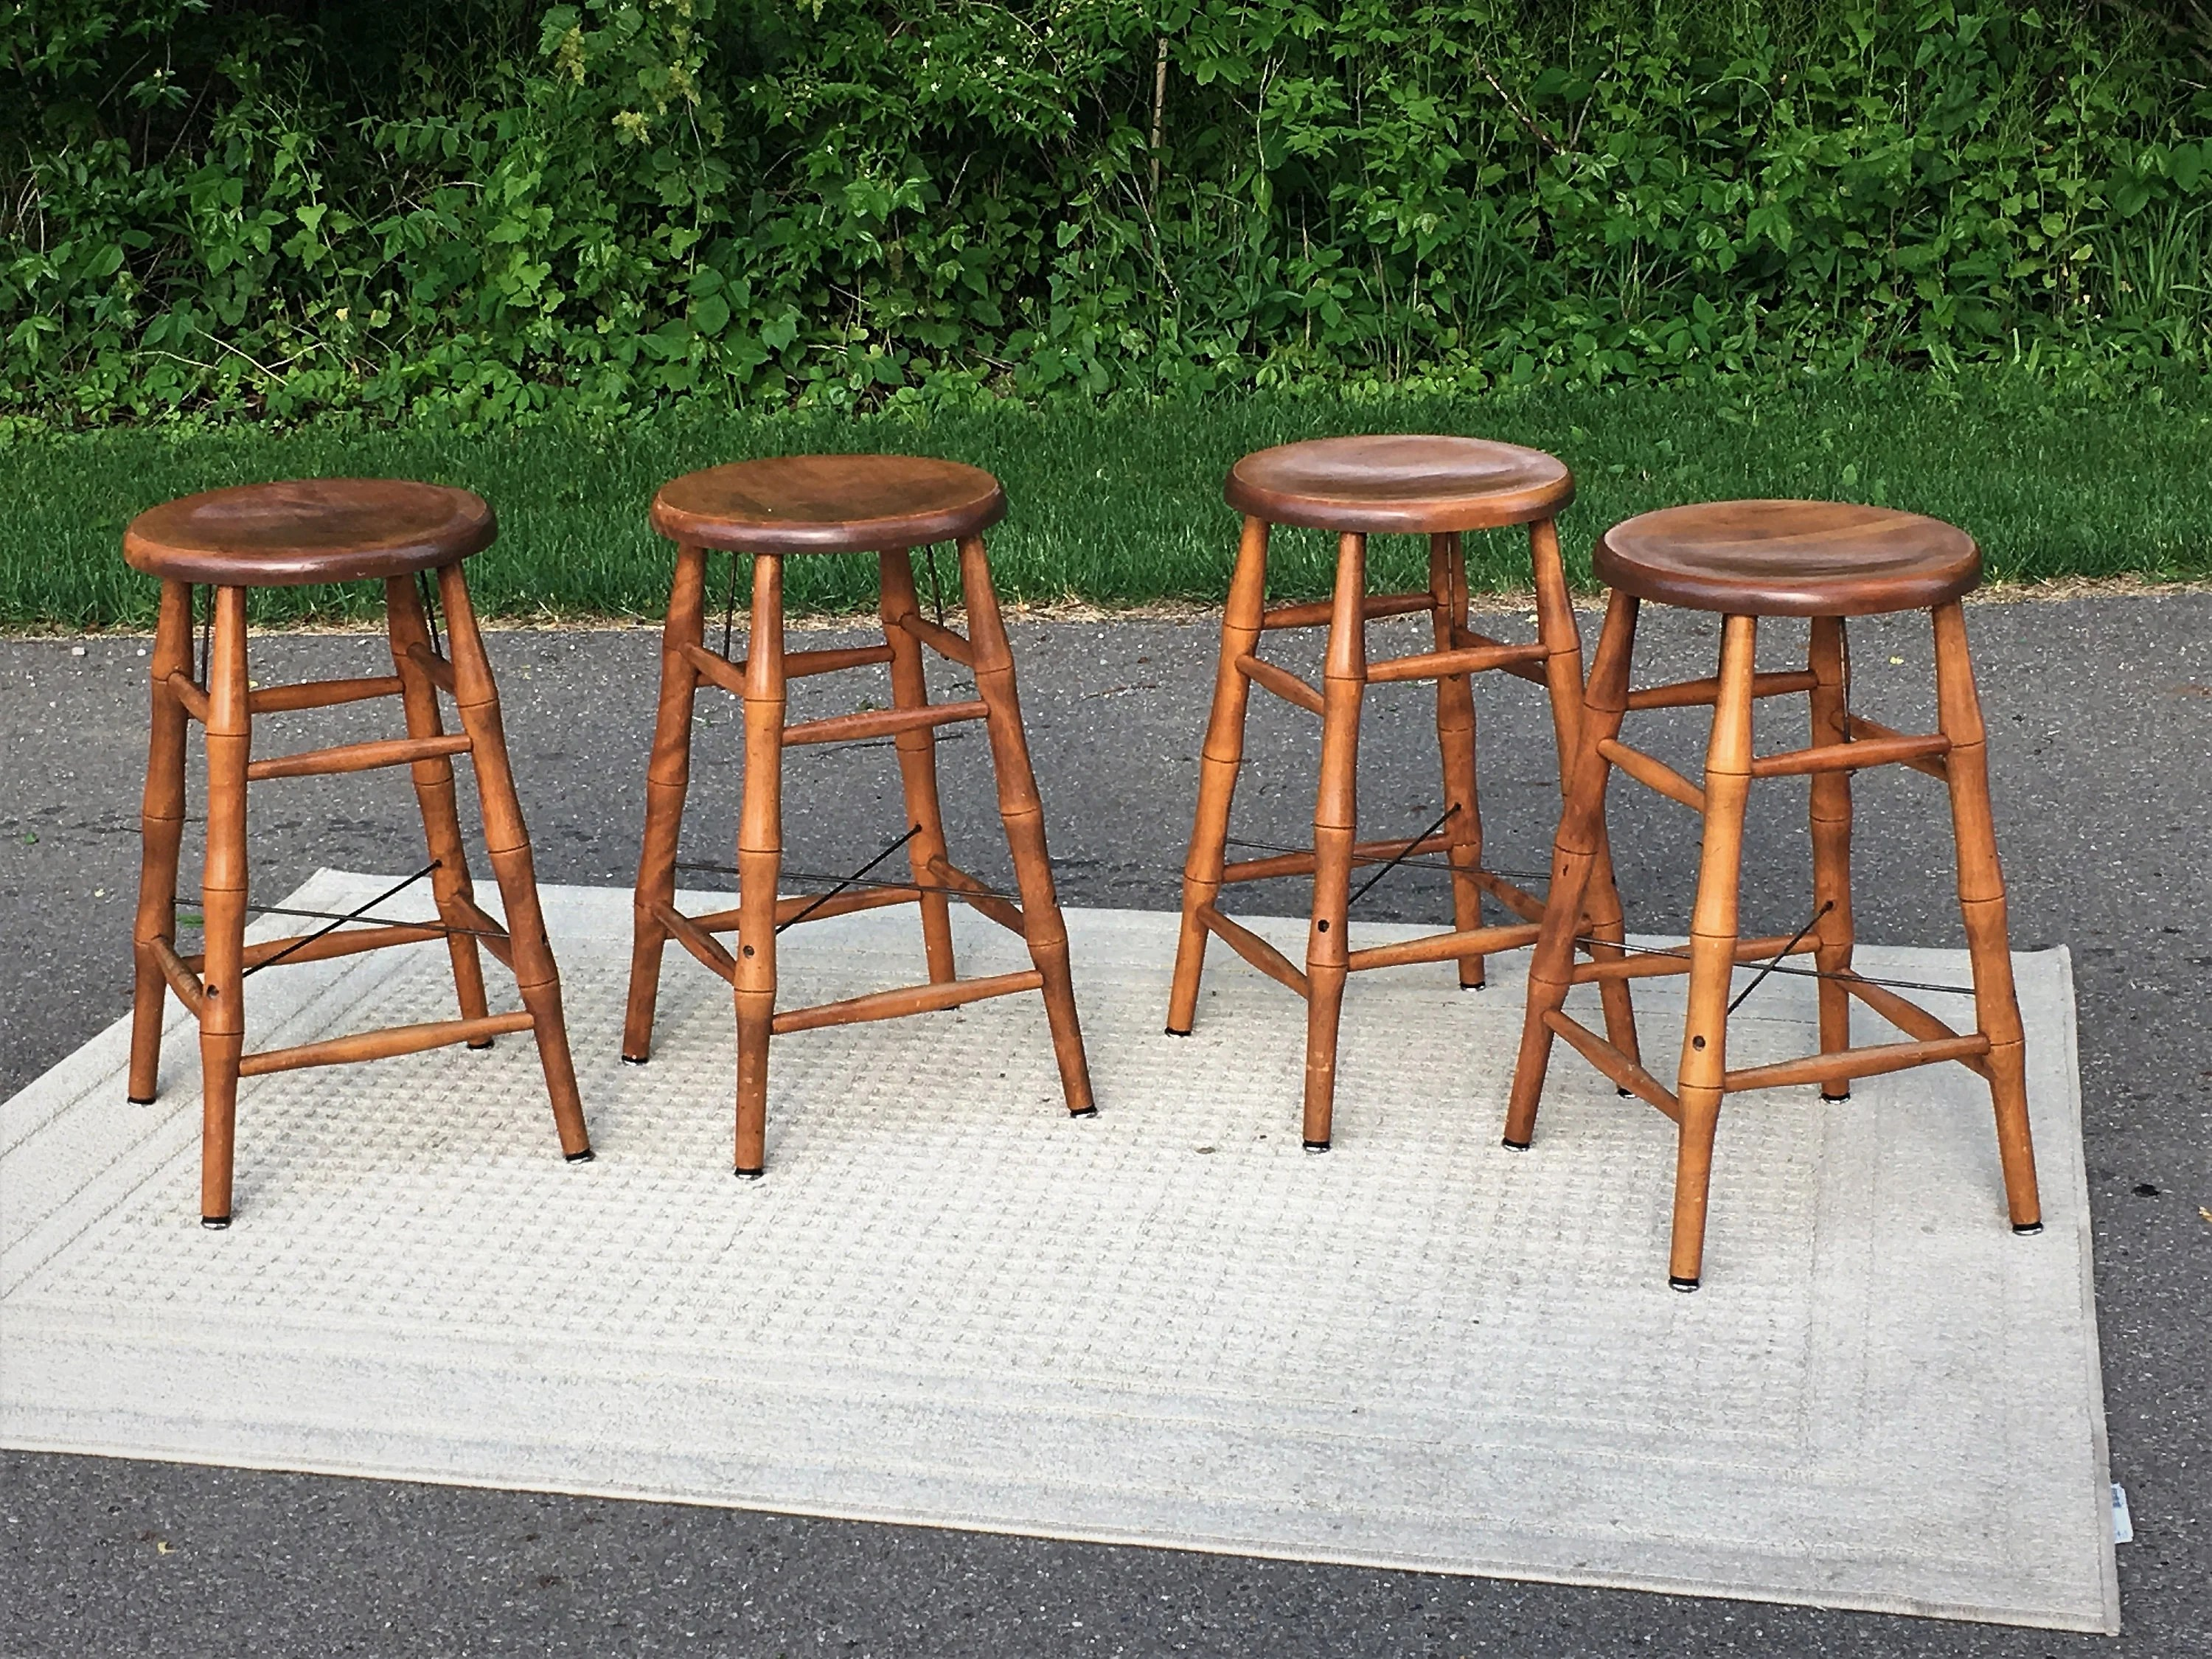 Vintage Maple Bar Stools 4 Bent Bros Stools Bamboo Style Counter Seat Industrial Metal Wood Decoration Gold Brown Kitchen Furniture